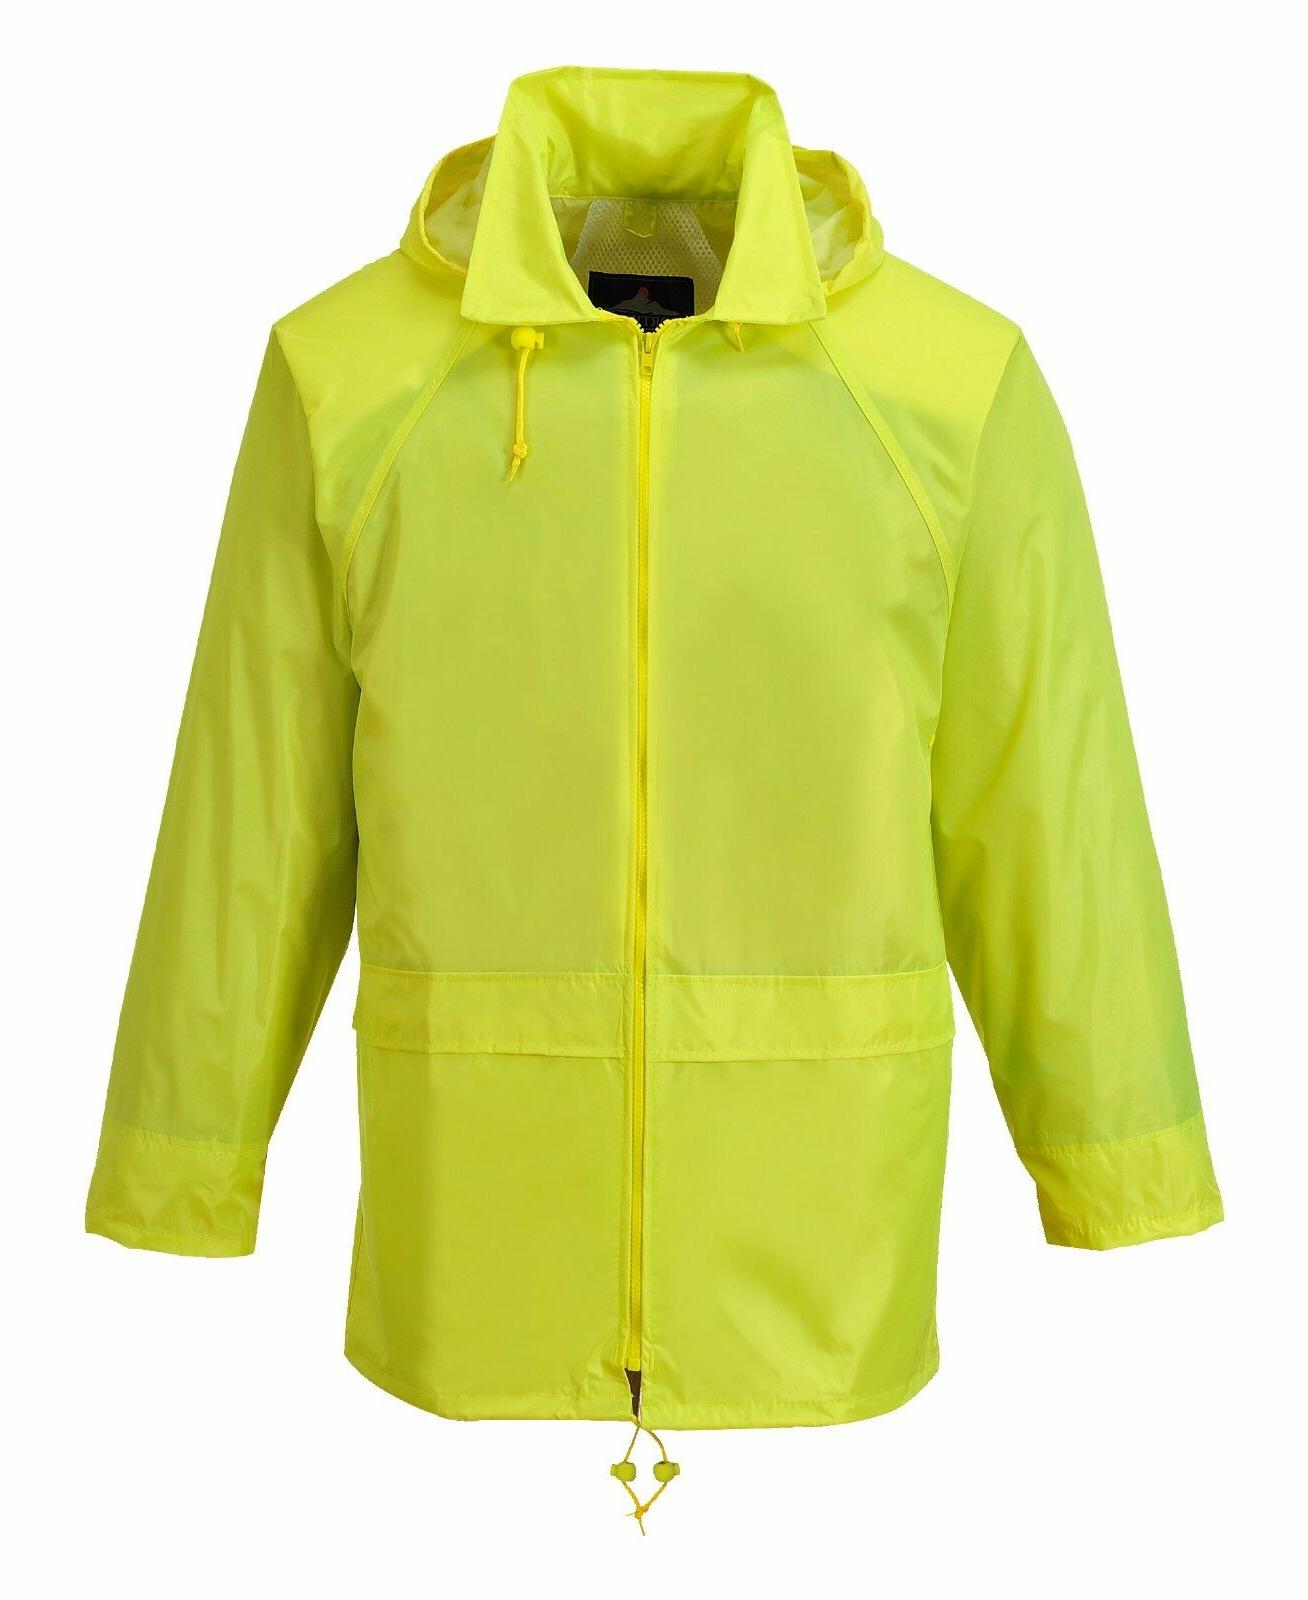 Portwest Jacket, Waterproof Outdoor with Hood